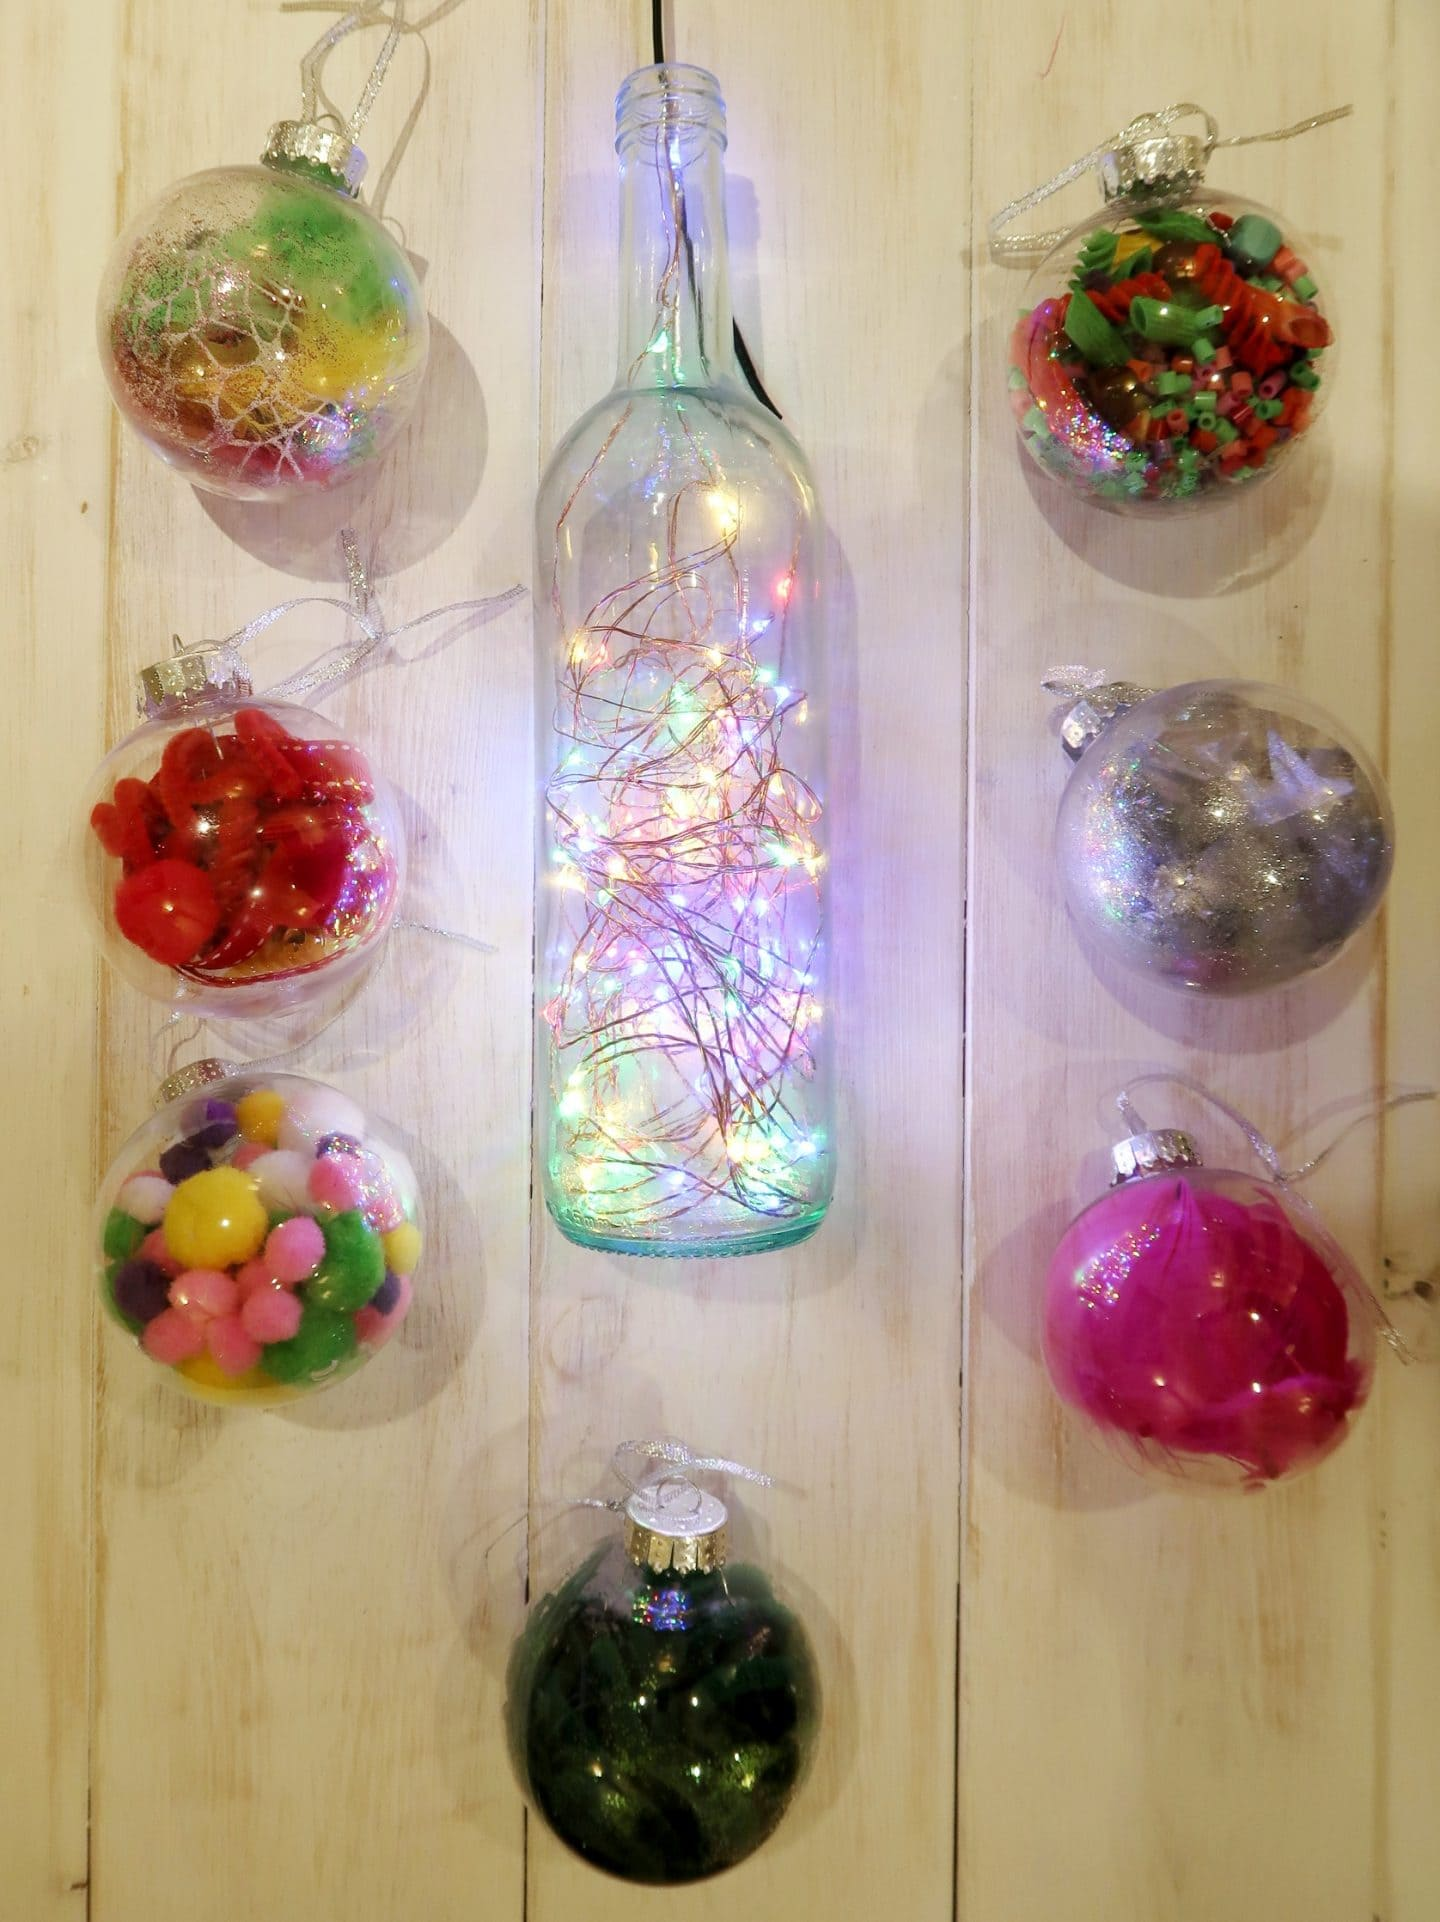 A selection of Christmas baubles with a wine bottle filled with coloured fairy light in the middle